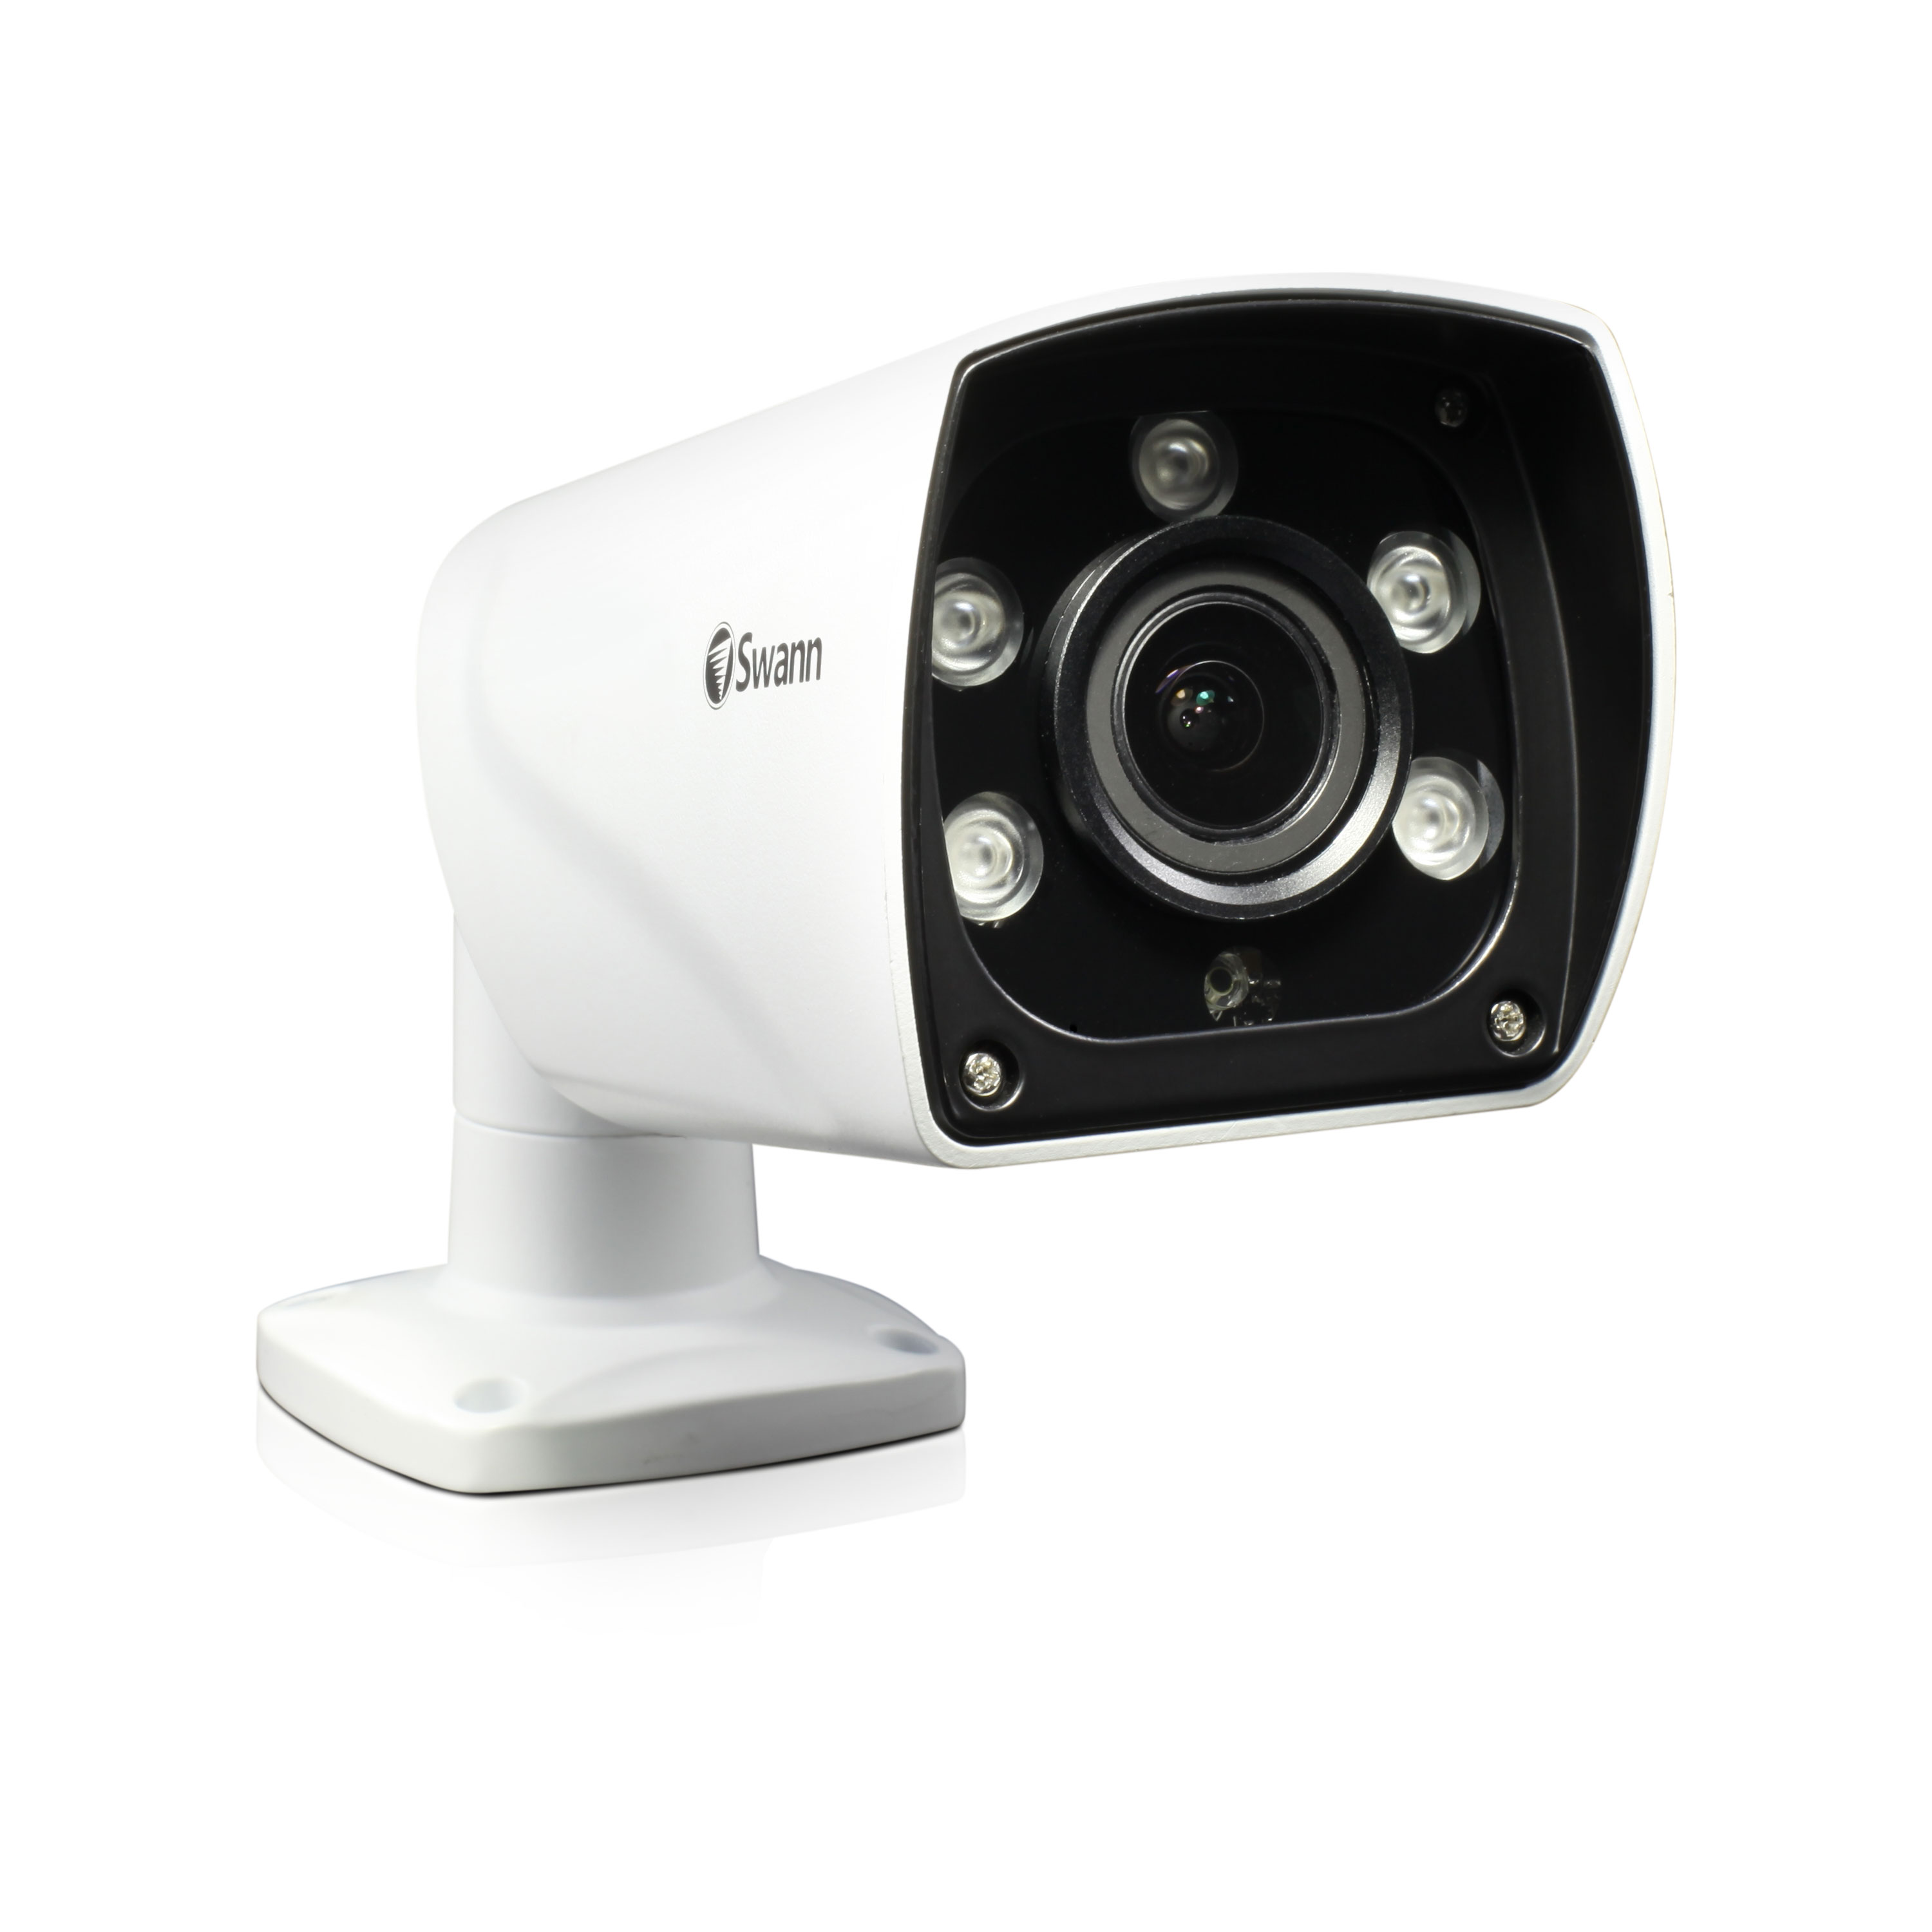 pro 1080zlb hd zoom security camera usa. Black Bedroom Furniture Sets. Home Design Ideas